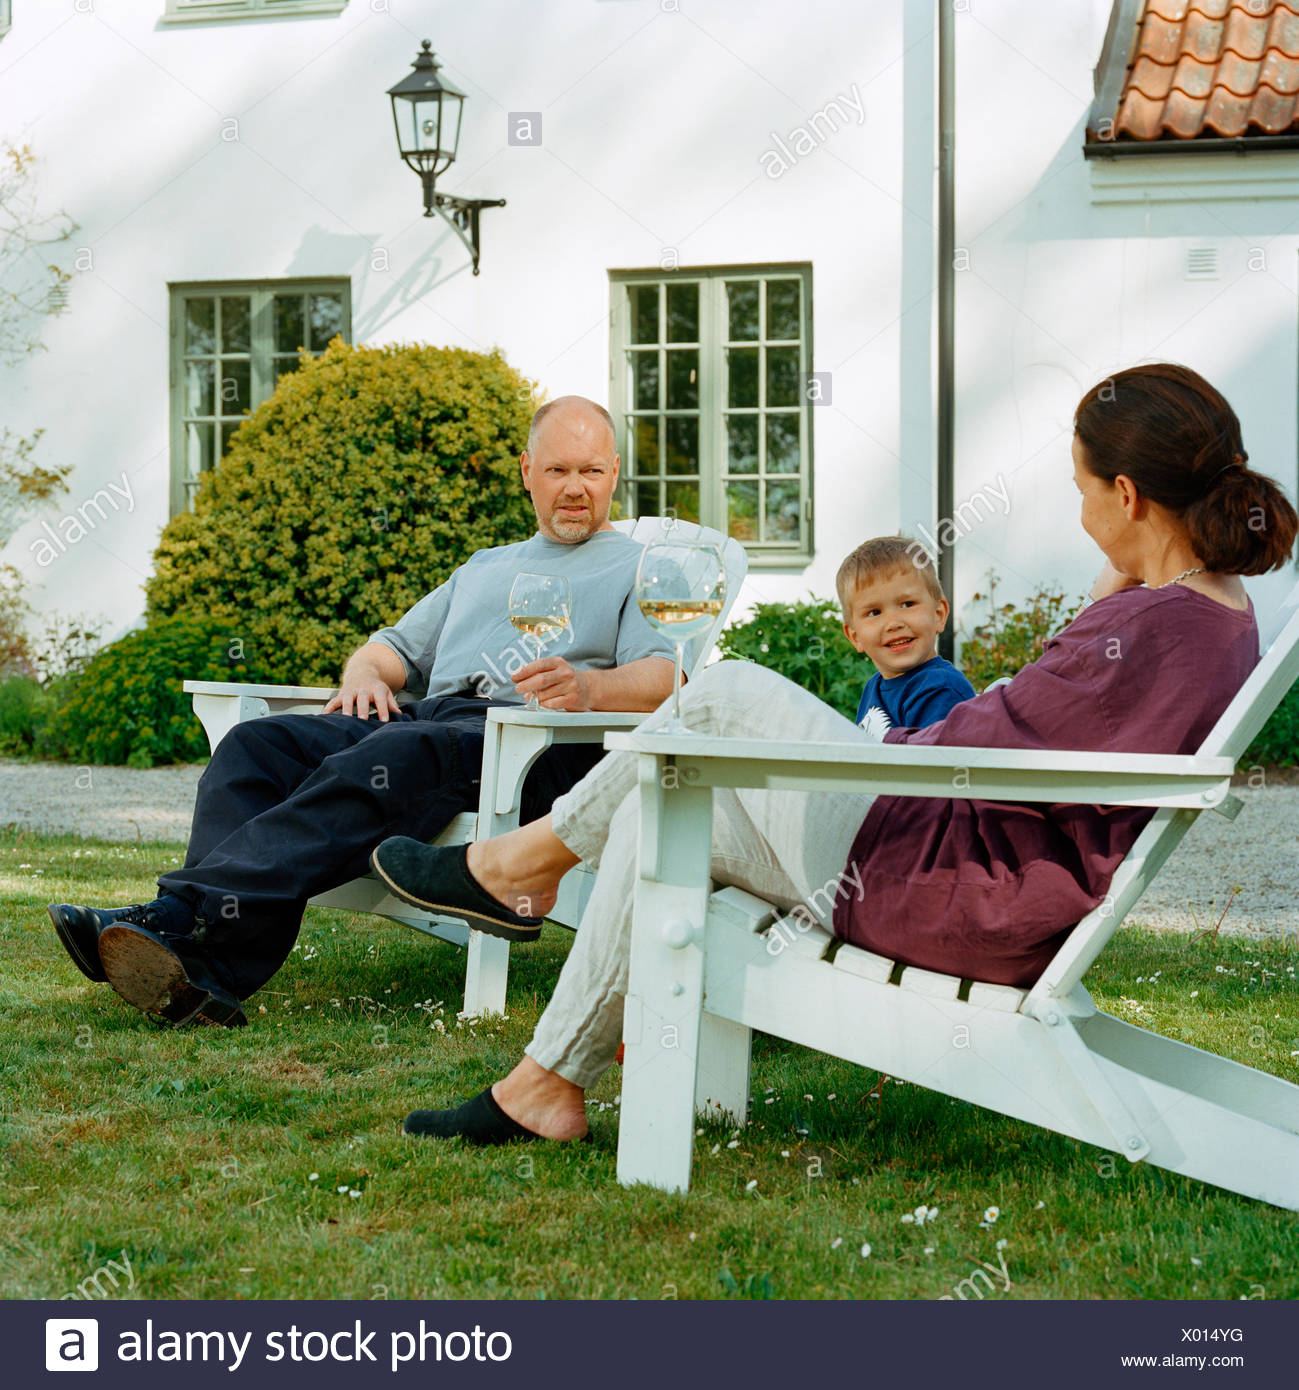 Family in a garden by a country house, Sweden. - Stock Image